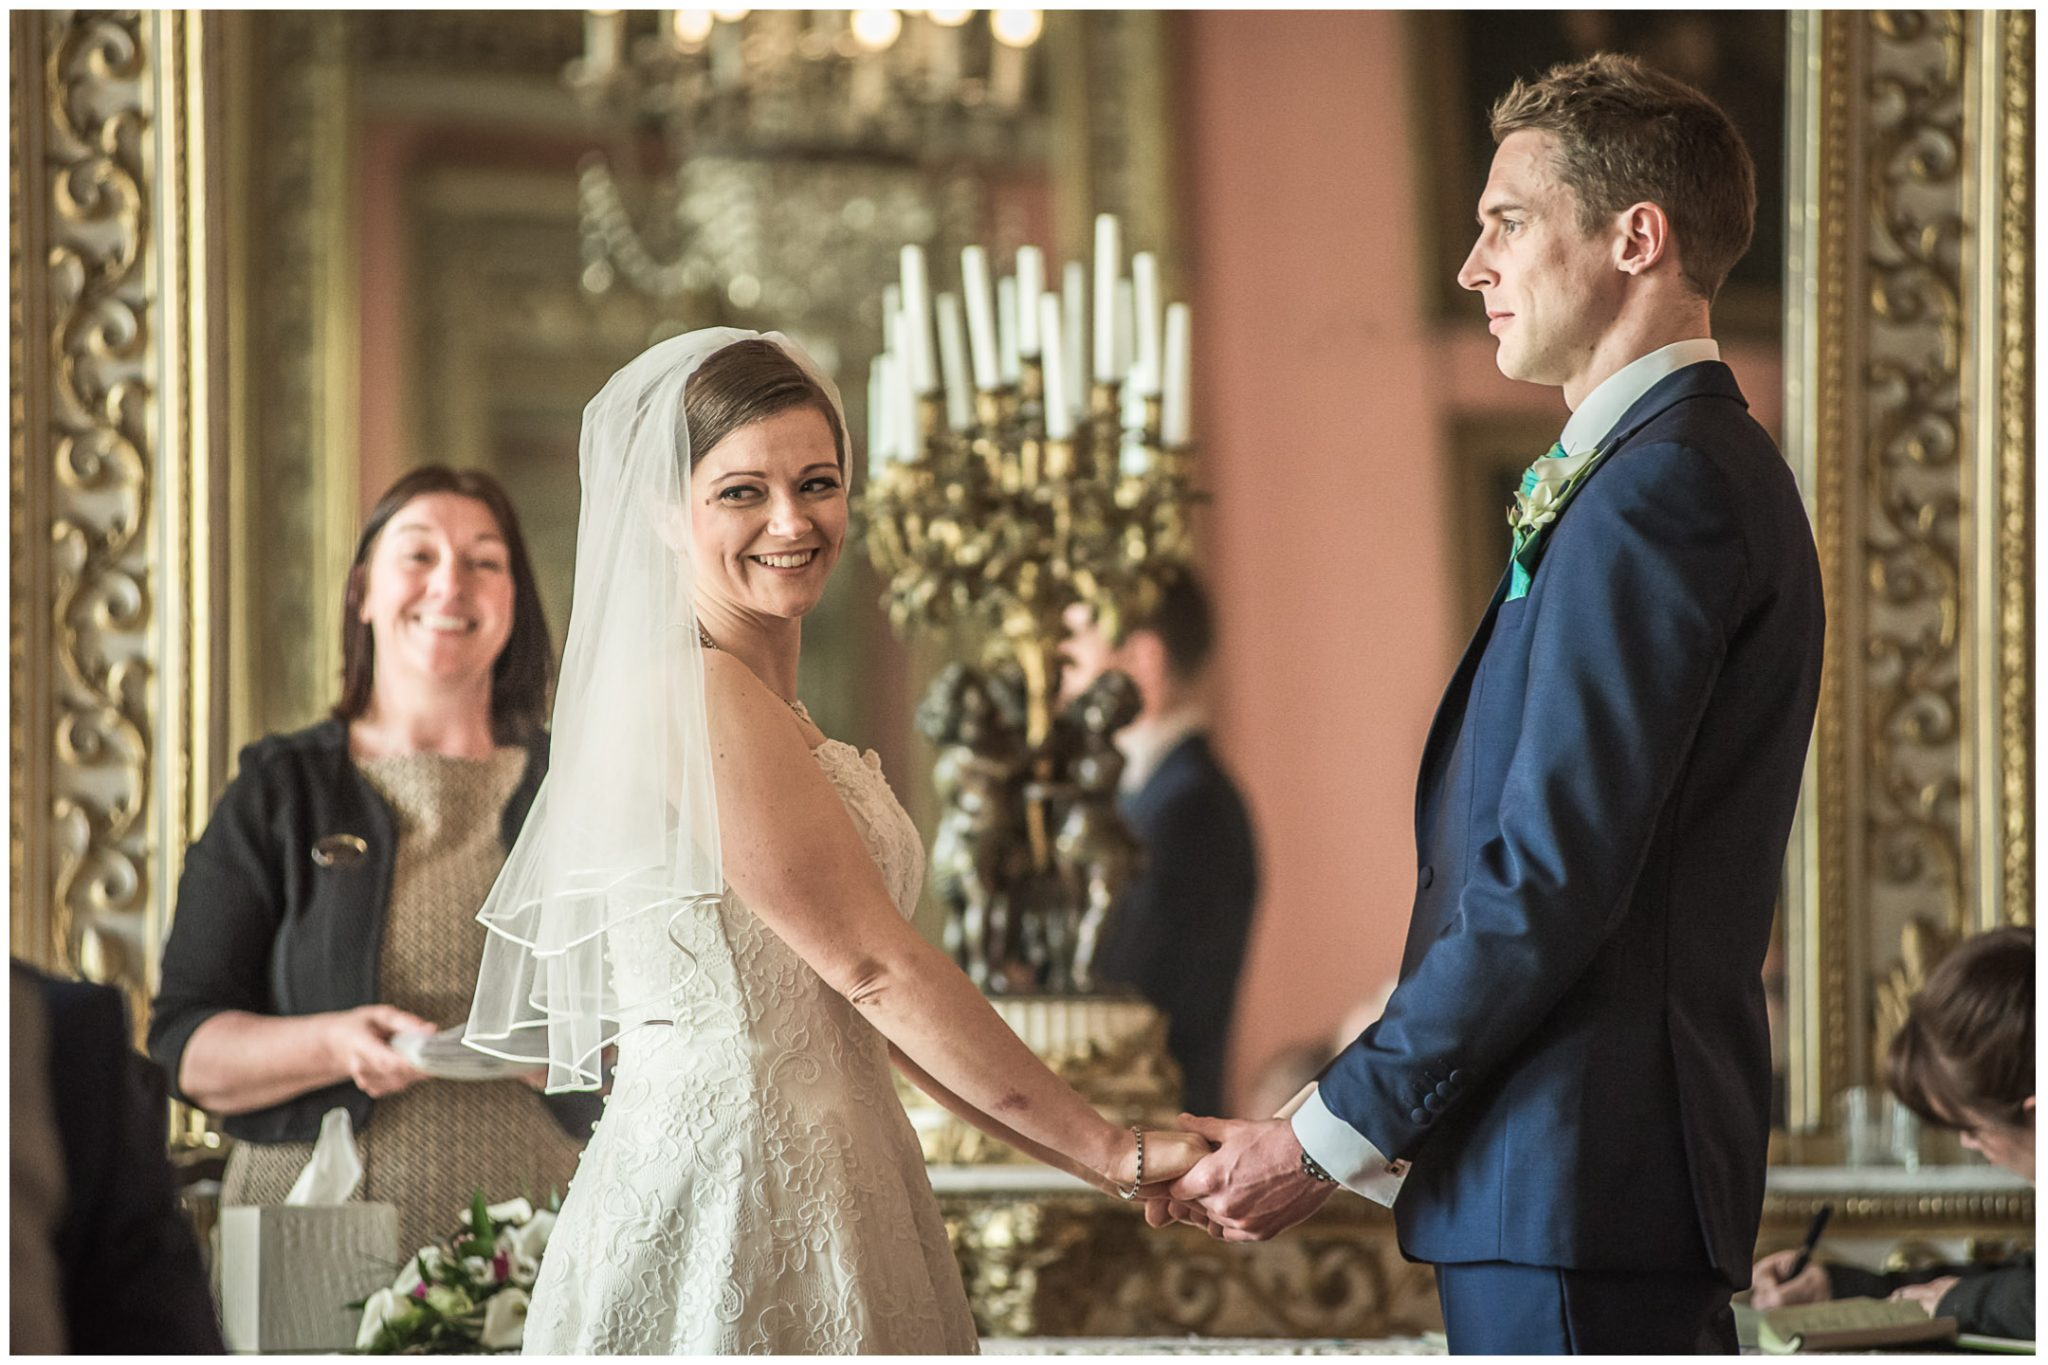 Avington Park wedding photography bride and groom hold hands during ceremony in ballroom